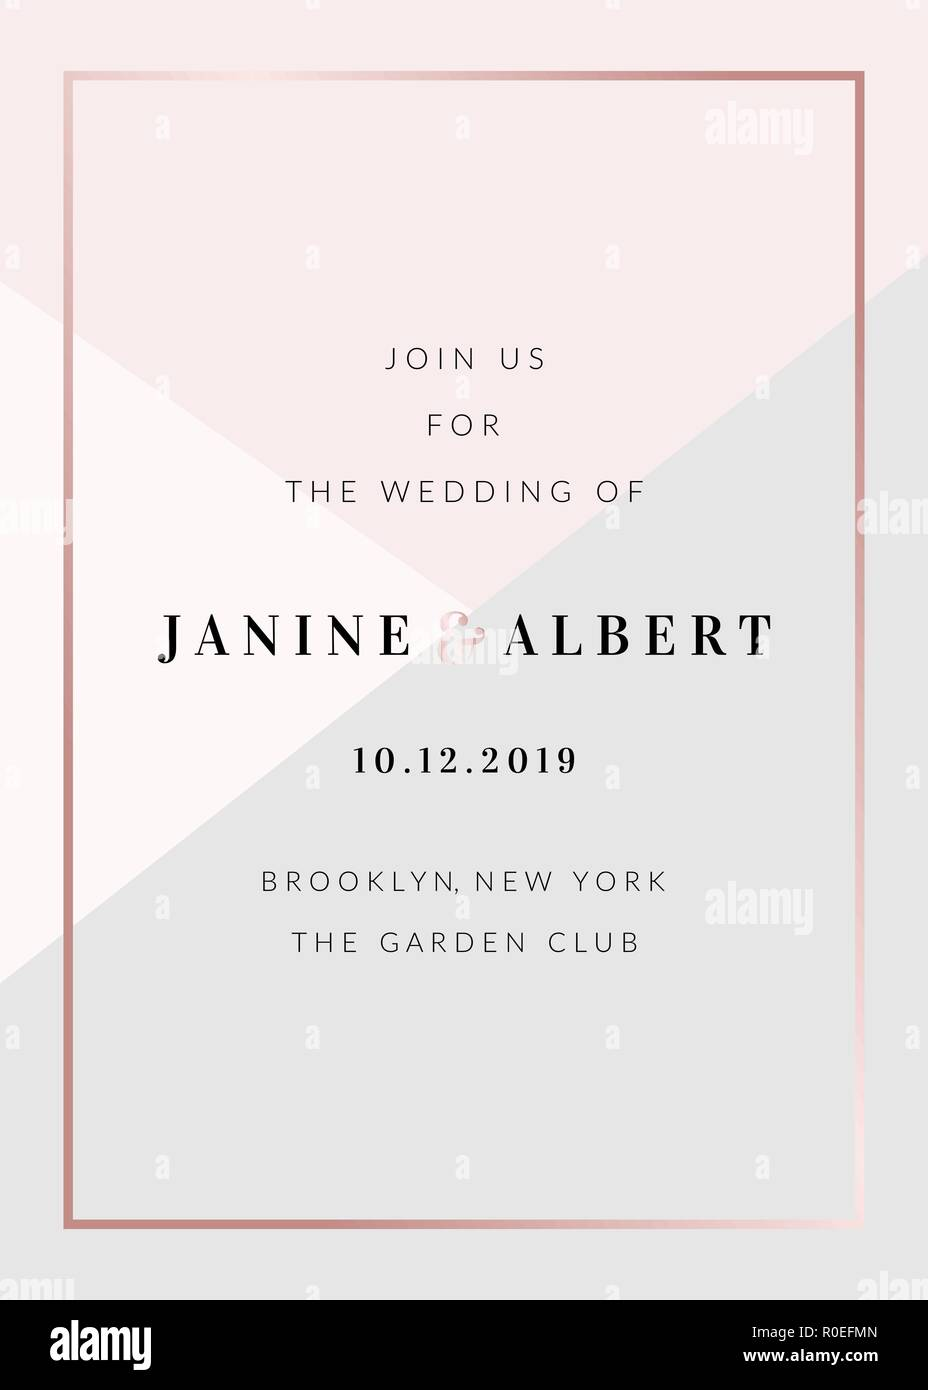 Wedding Invitation Template With Geometric Elements In Pastel Pink